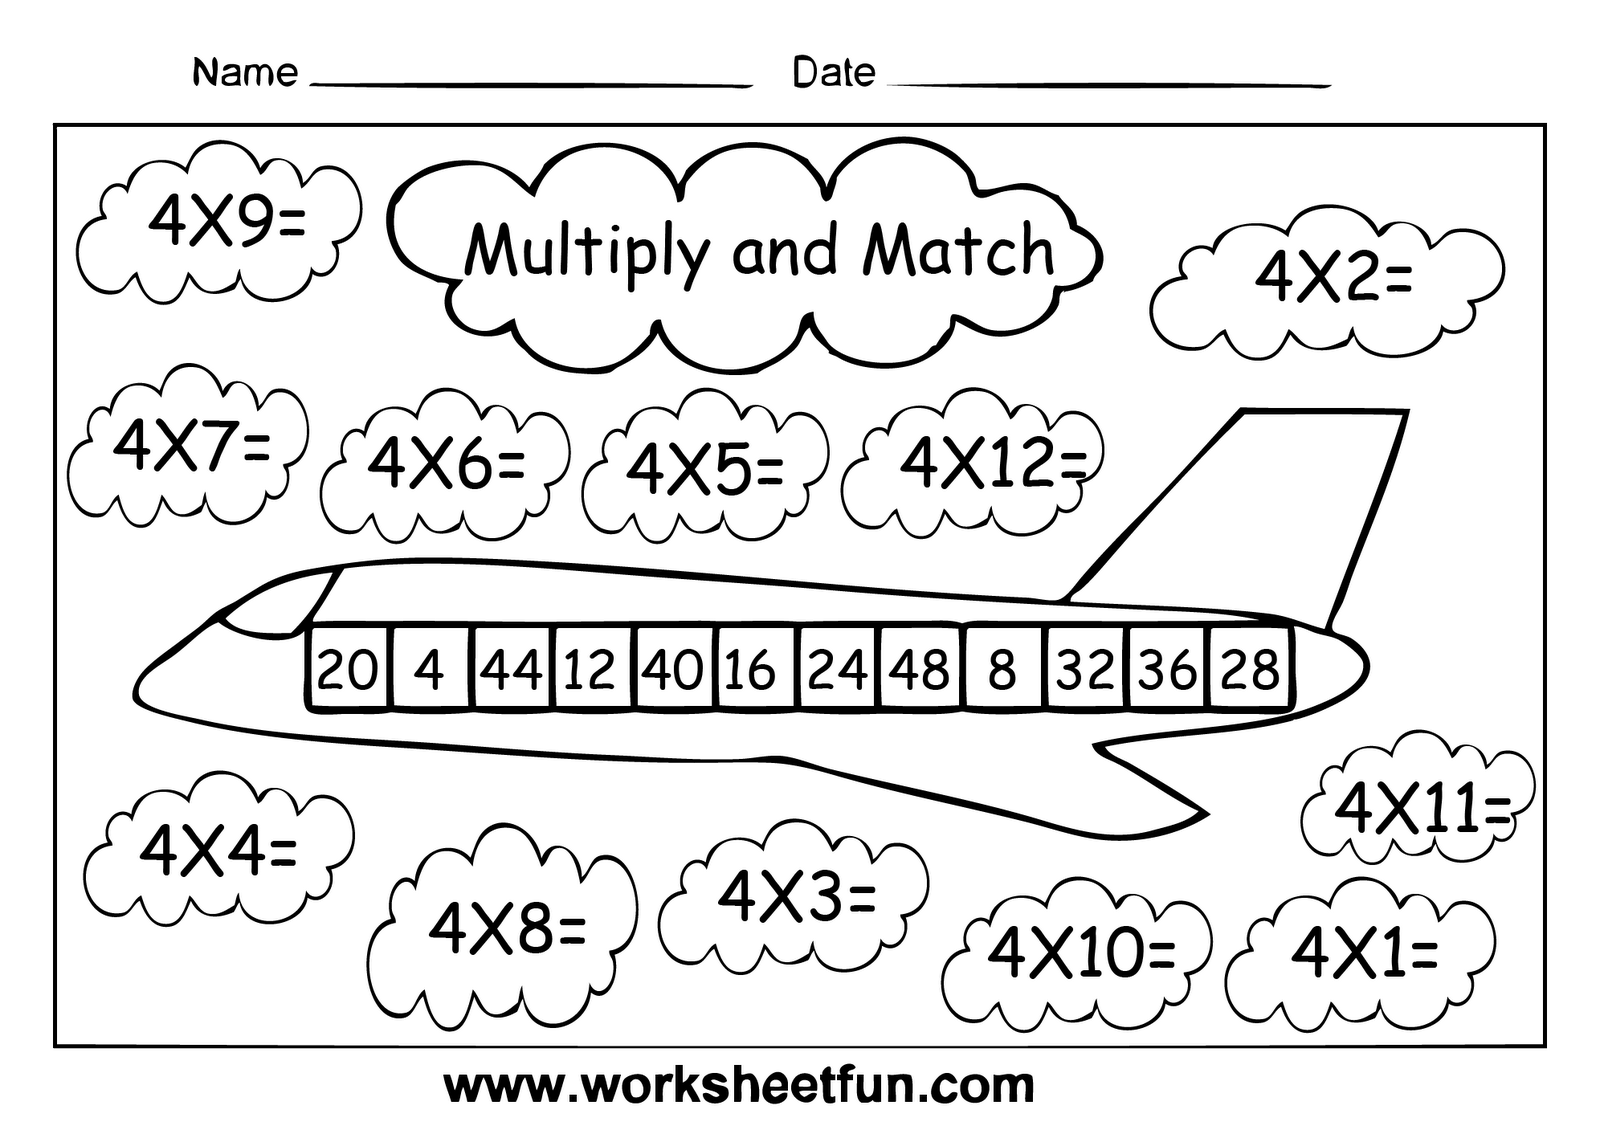 Fun Worksheets With Images